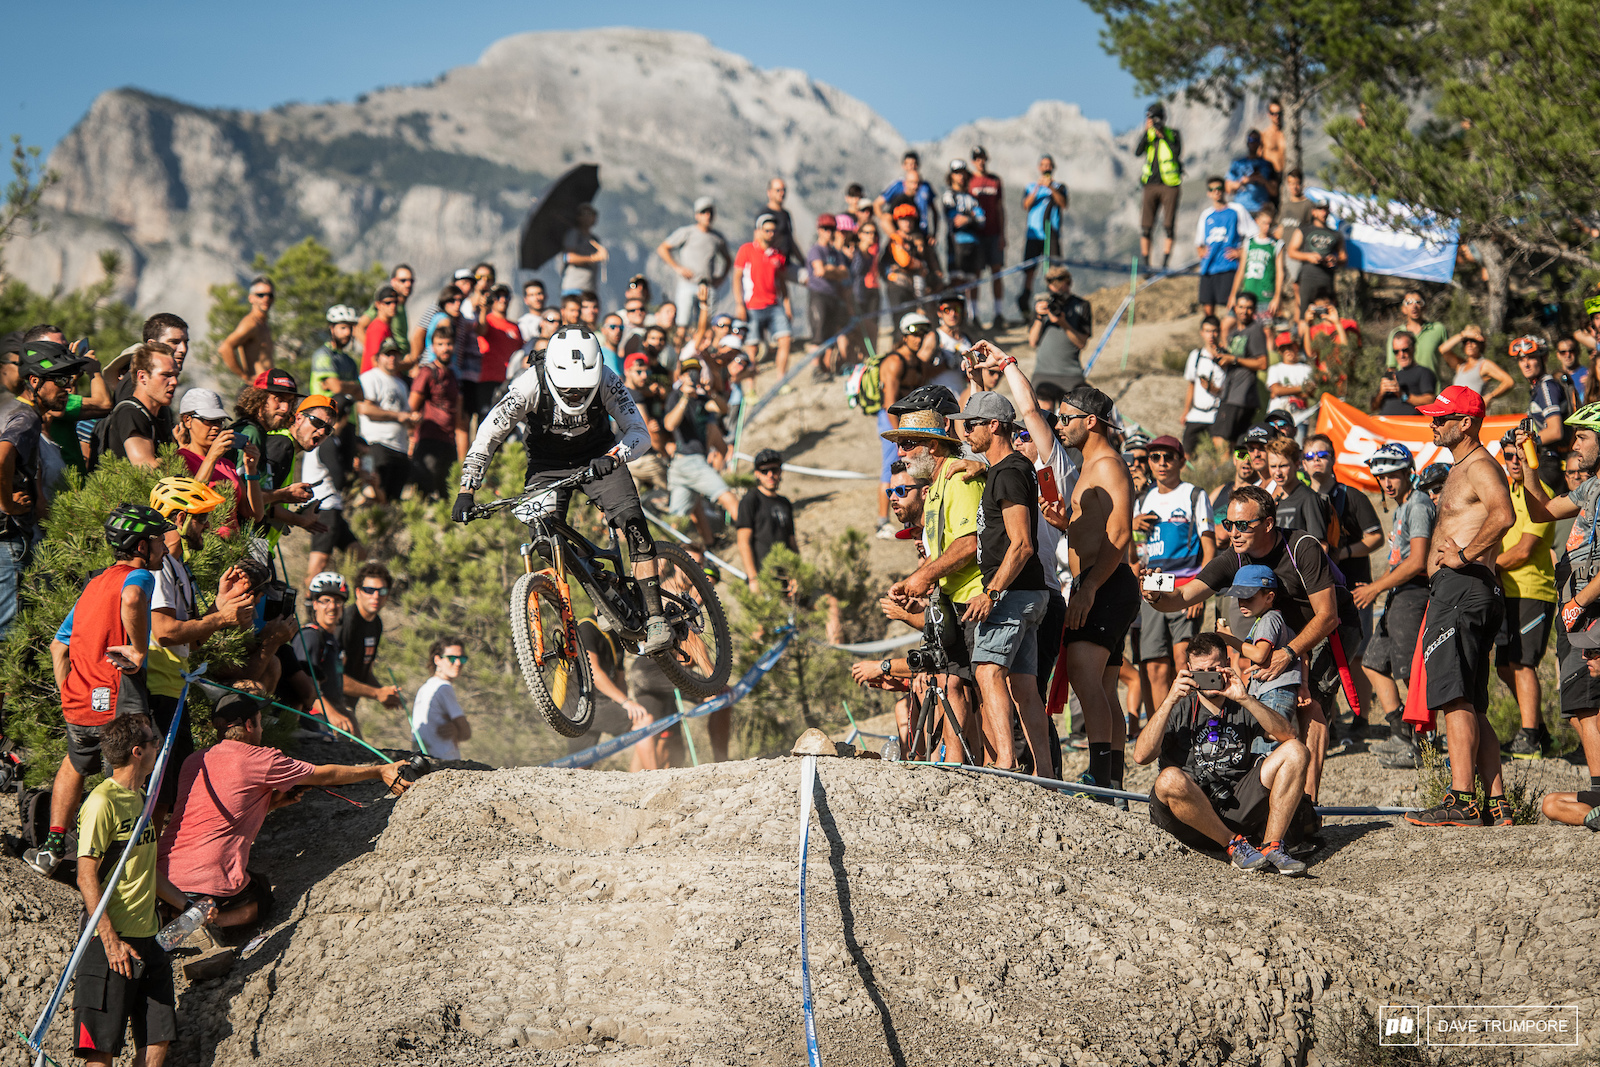 Lewis Buchanan was one of the only riders to send it off this steep blind chute